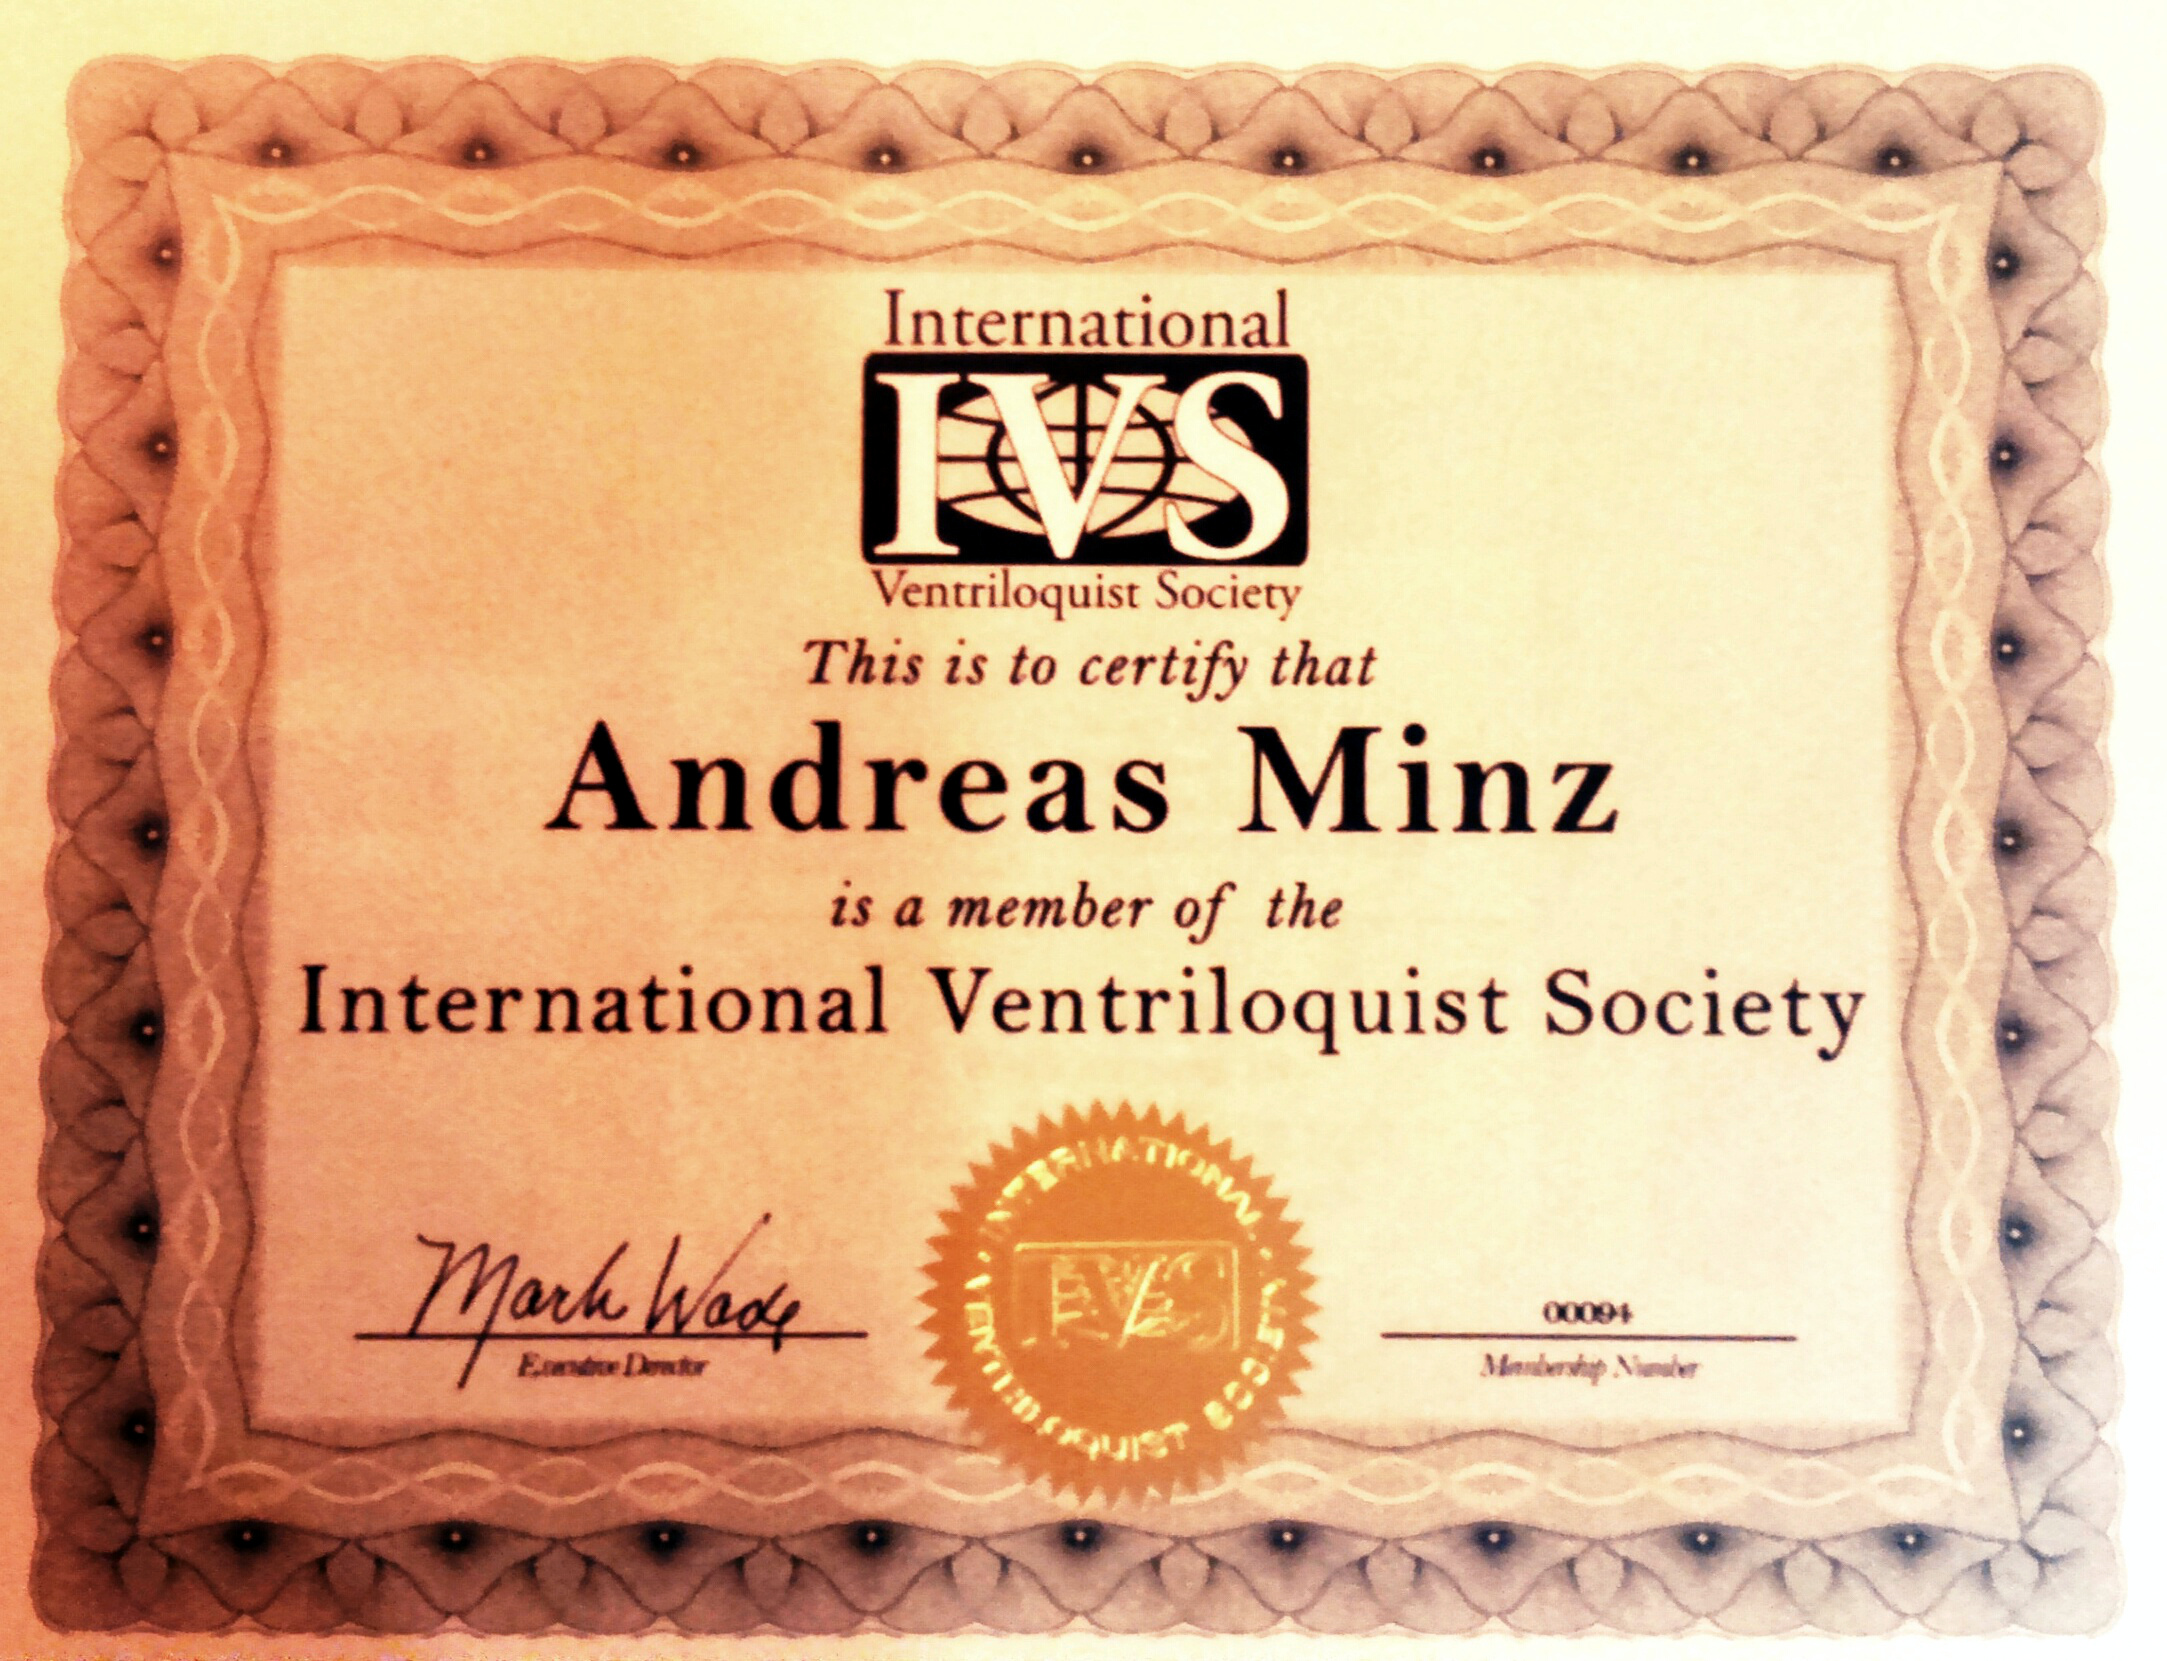 Minze is Member of the IVS - International Ventriloquist Society